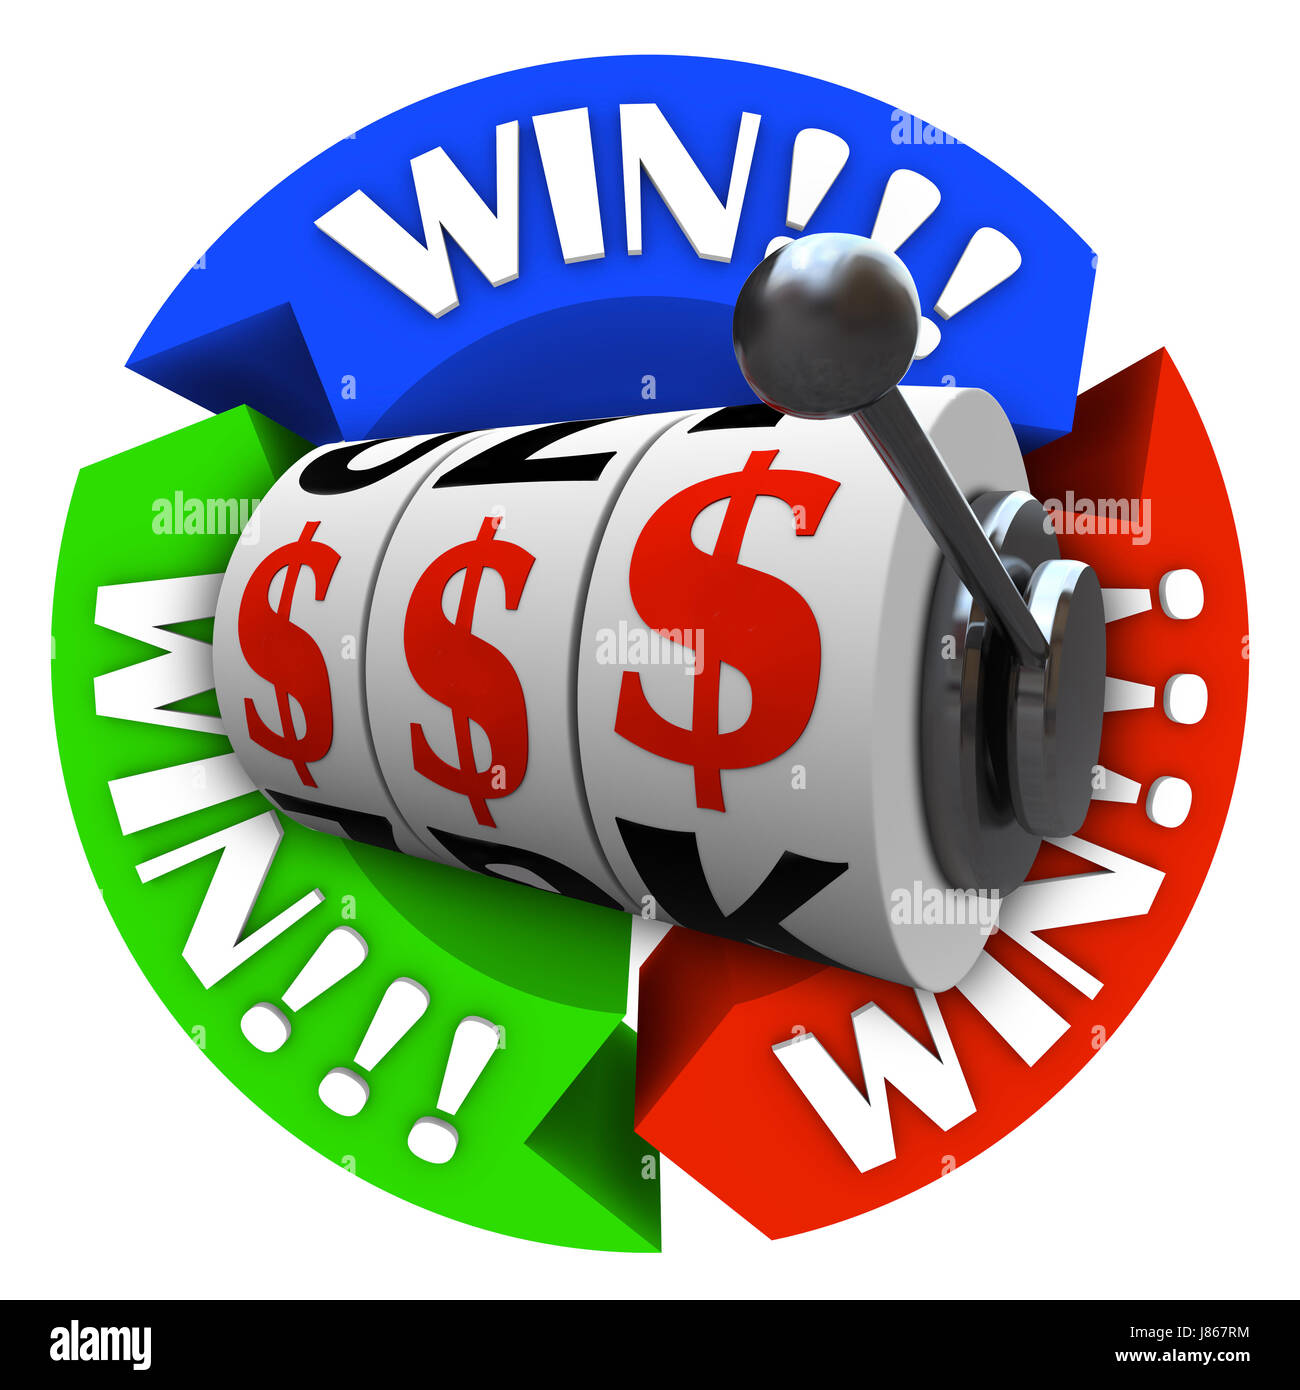 winner, game of chance, gambling, jackpot, winning, cash, cold cash, money in - Stock Image